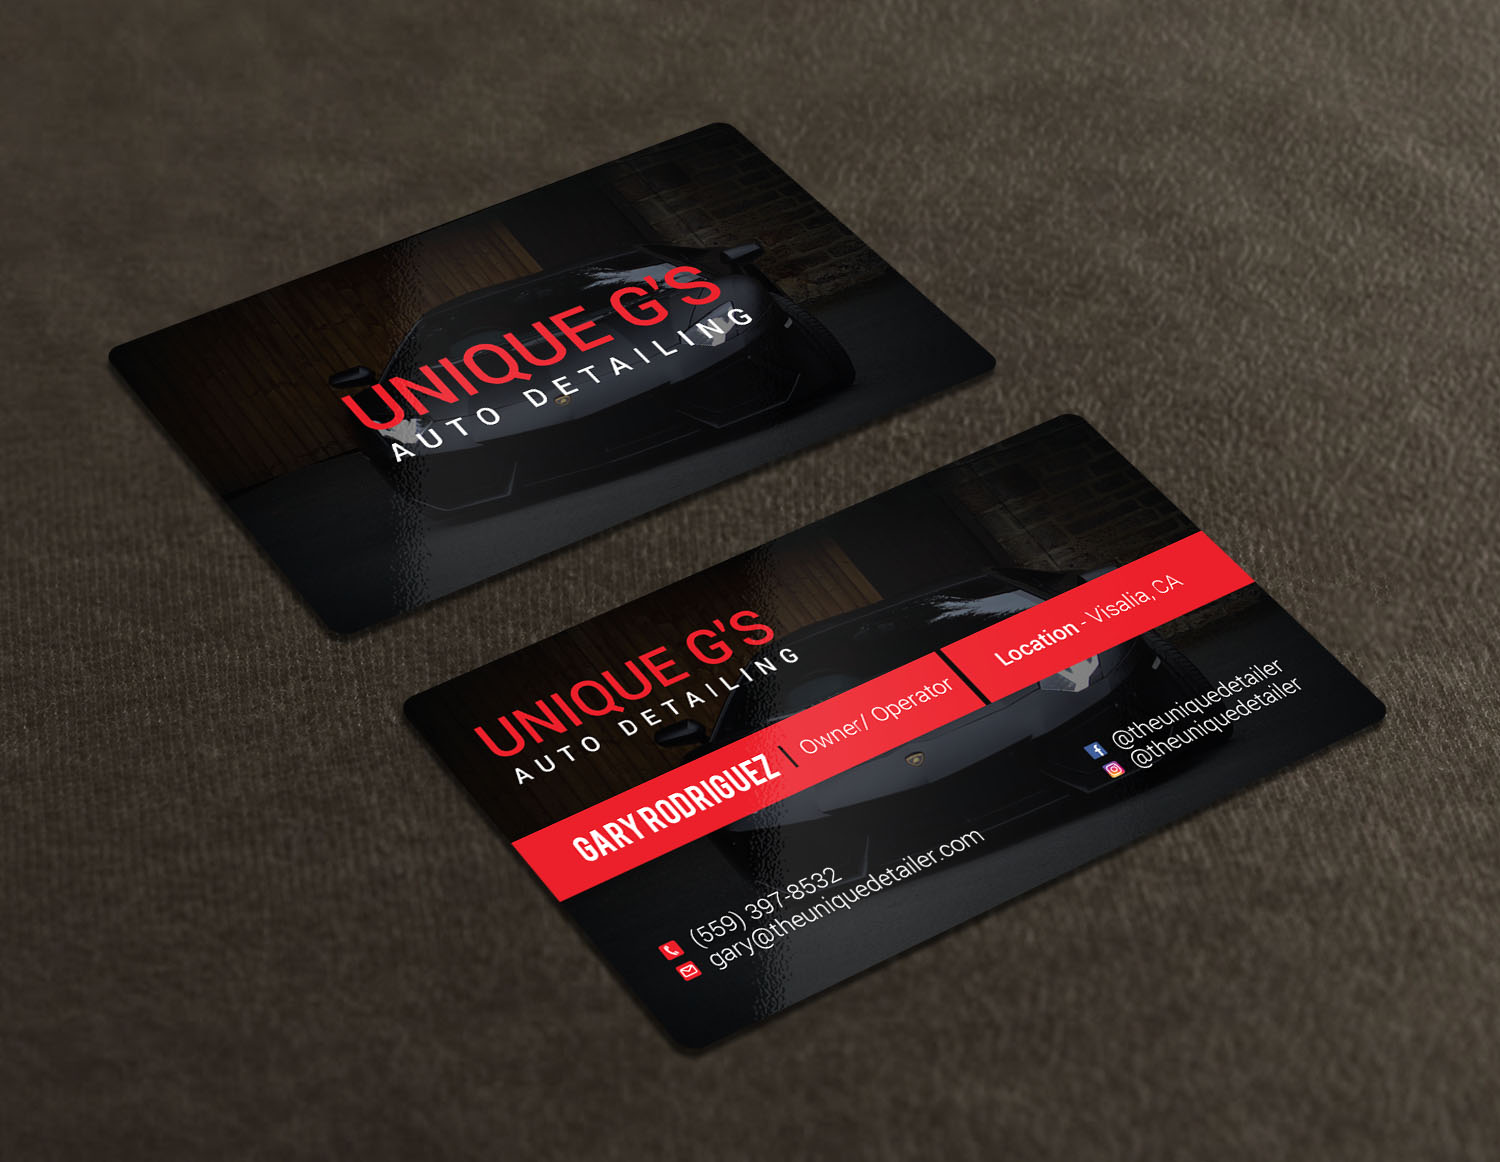 Modern professional automotive business card design for a company business card design by avanger000 for this project design 18039481 reheart Choice Image